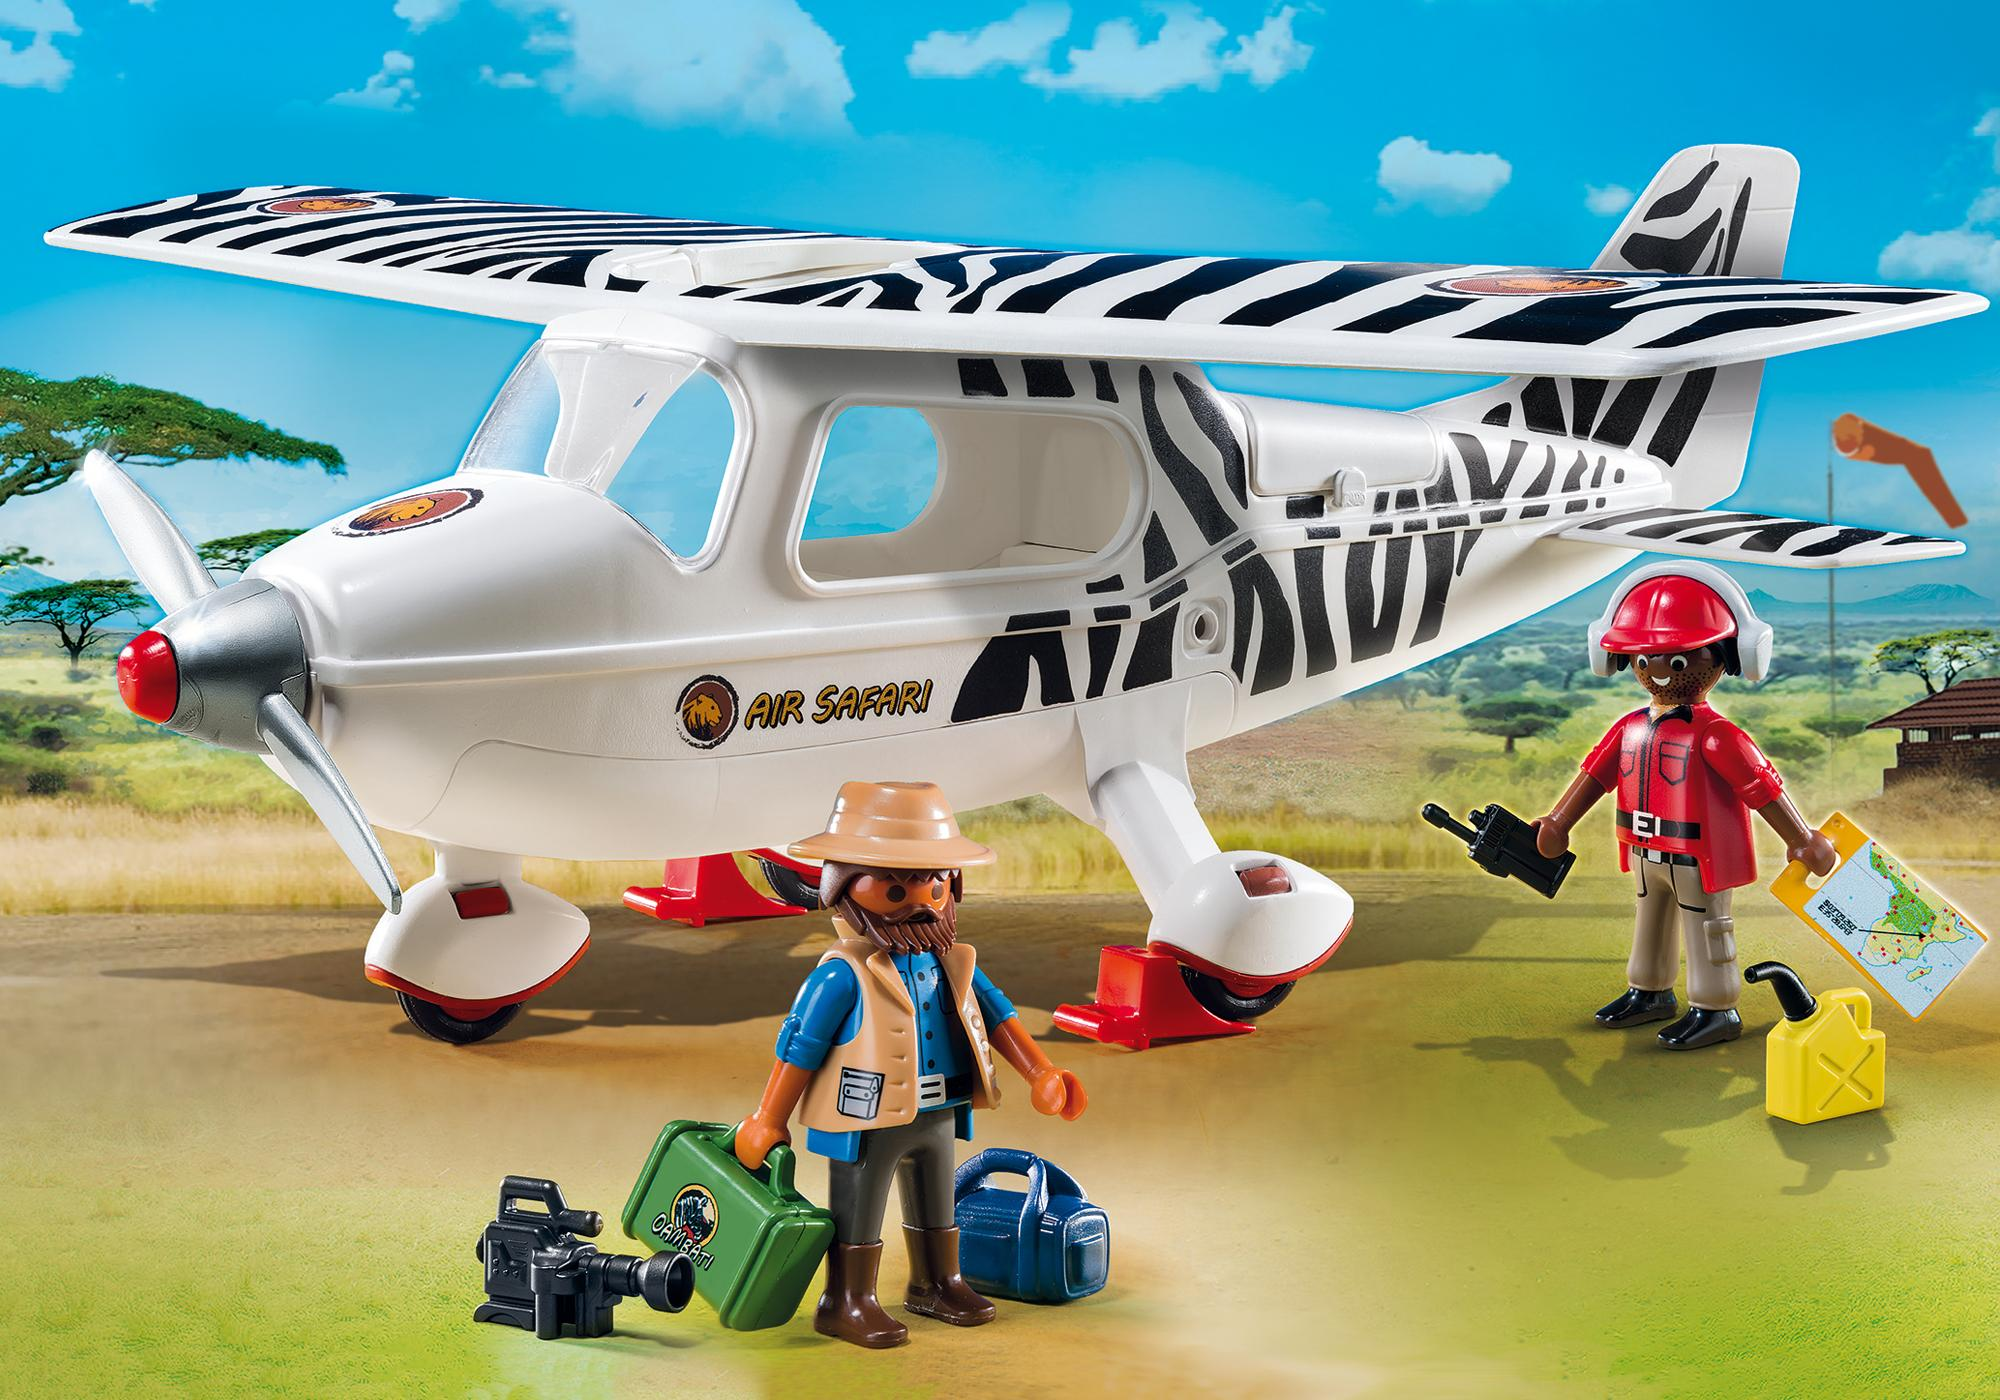 http://media.playmobil.com/i/playmobil/6938_product_detail